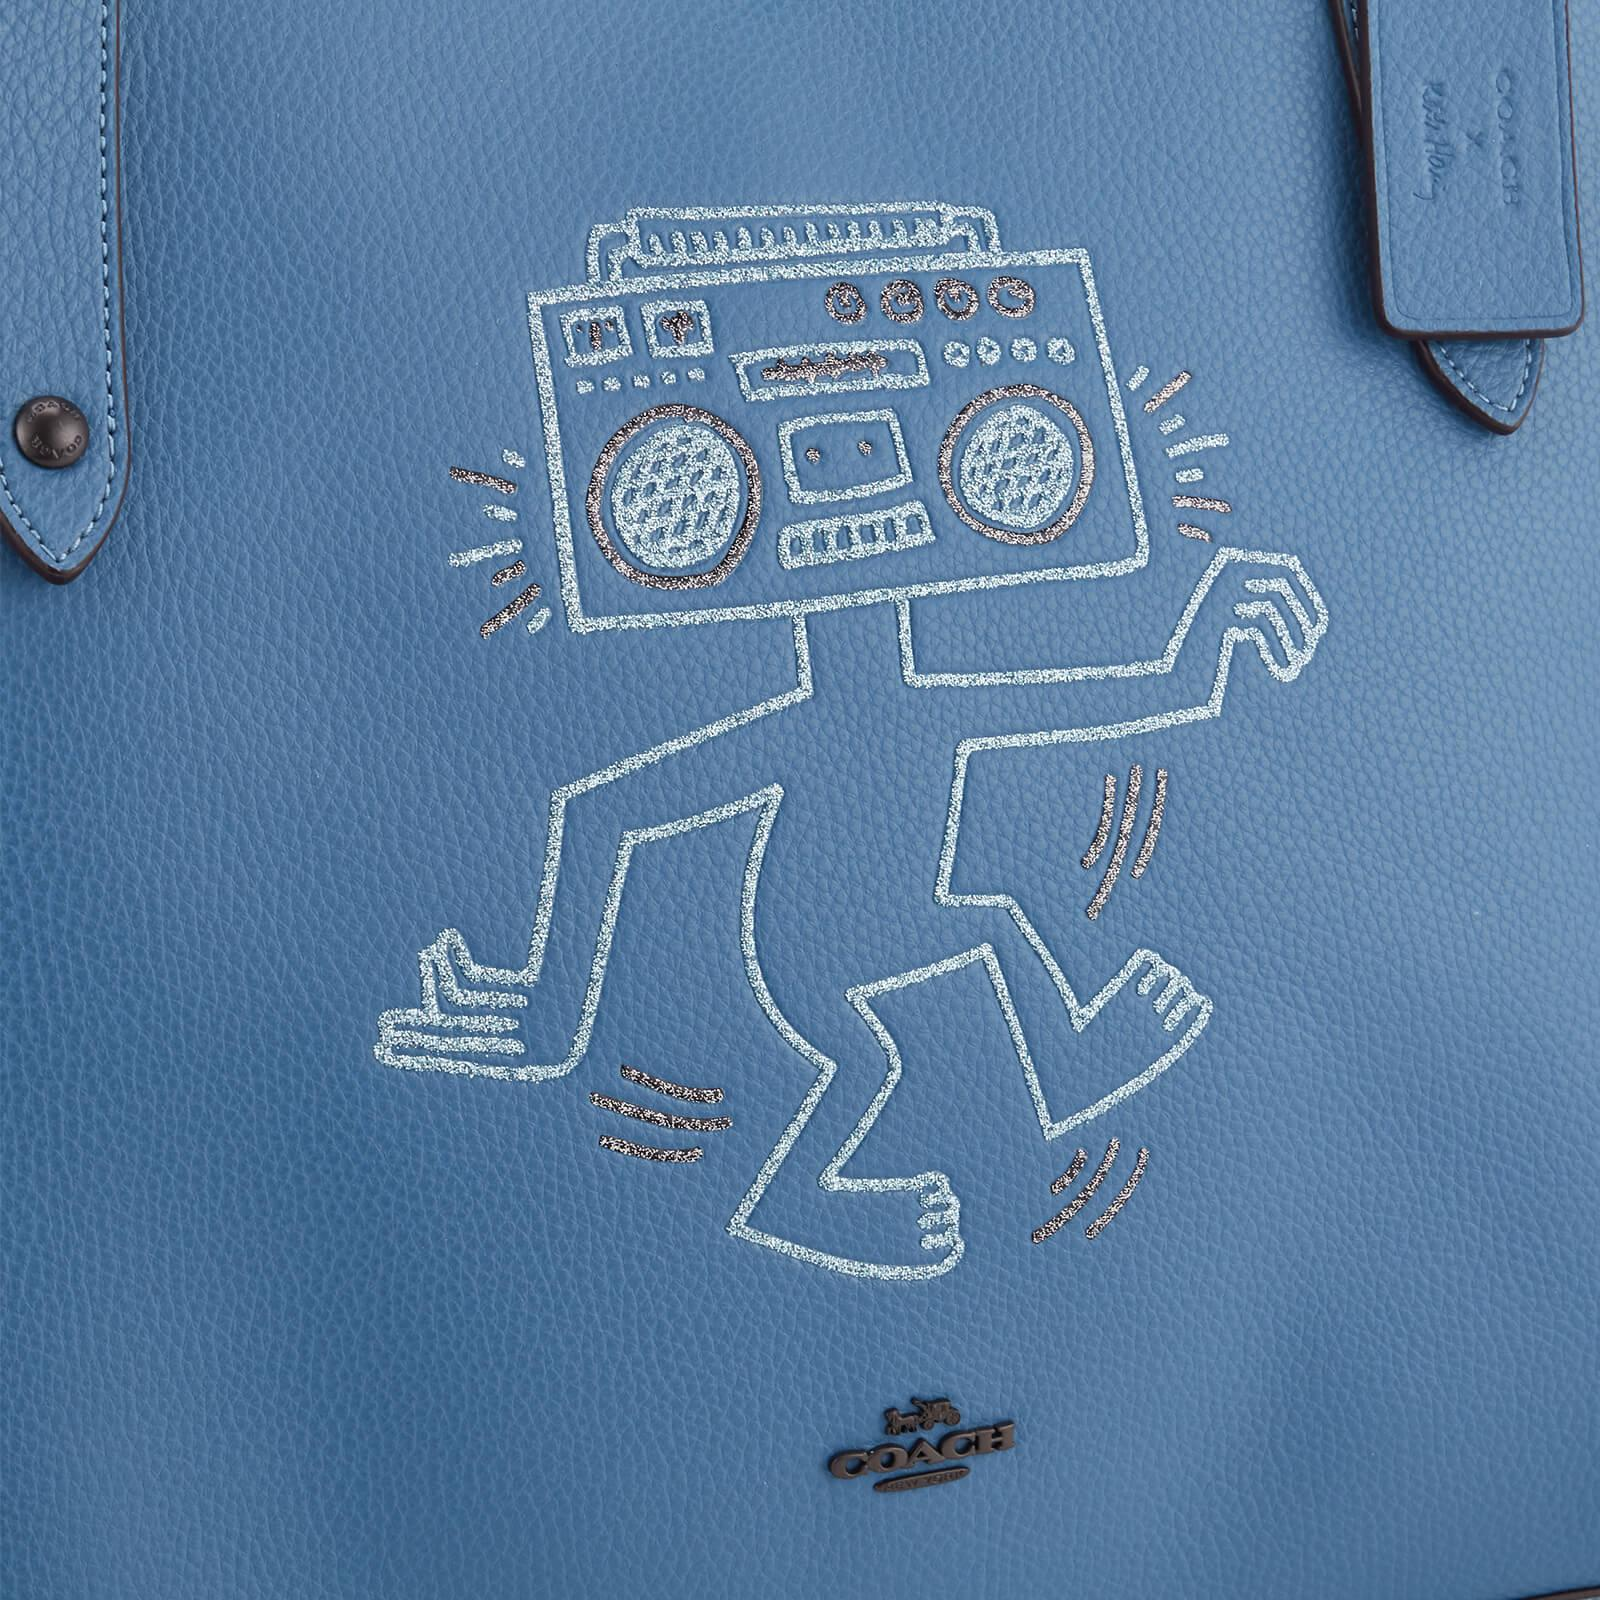 COACH Leather X Keith Haring Market Tote Bag in Blue